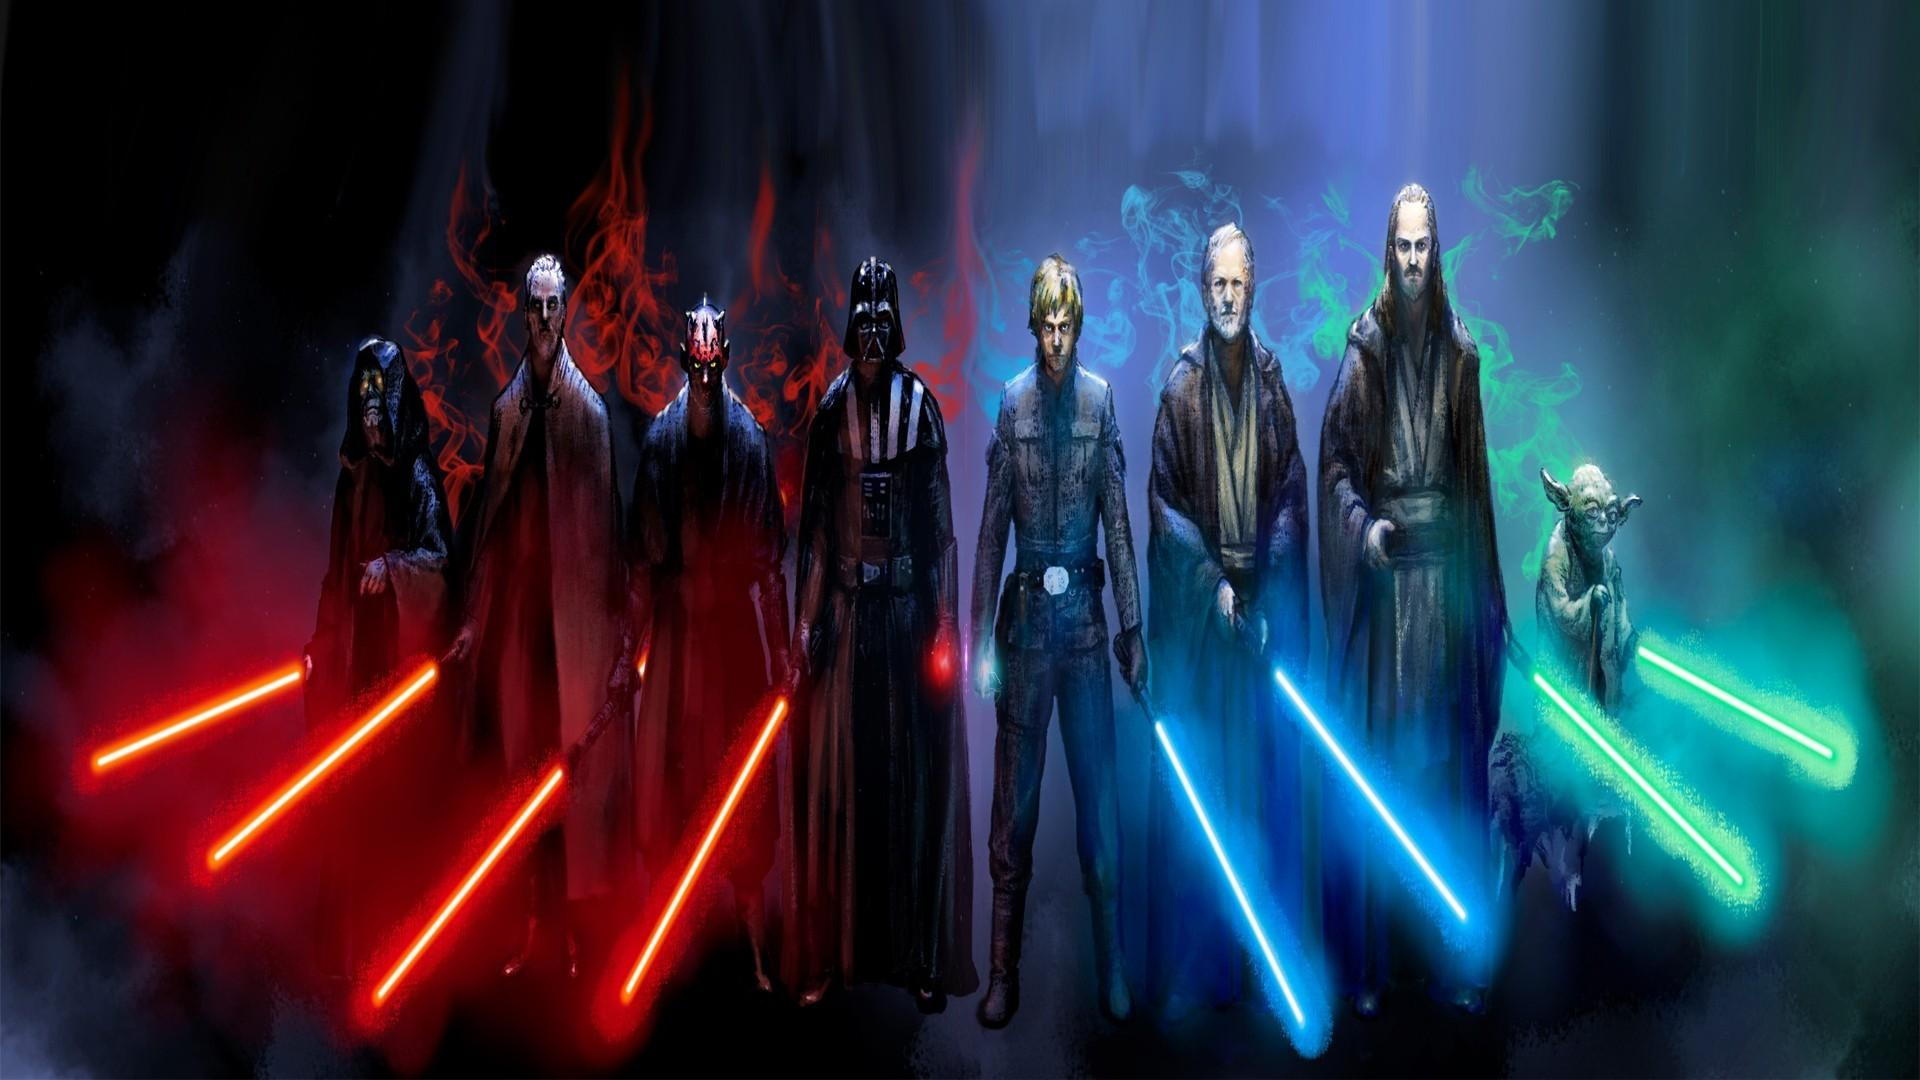 star wars revenge of the sith hd wallpaper